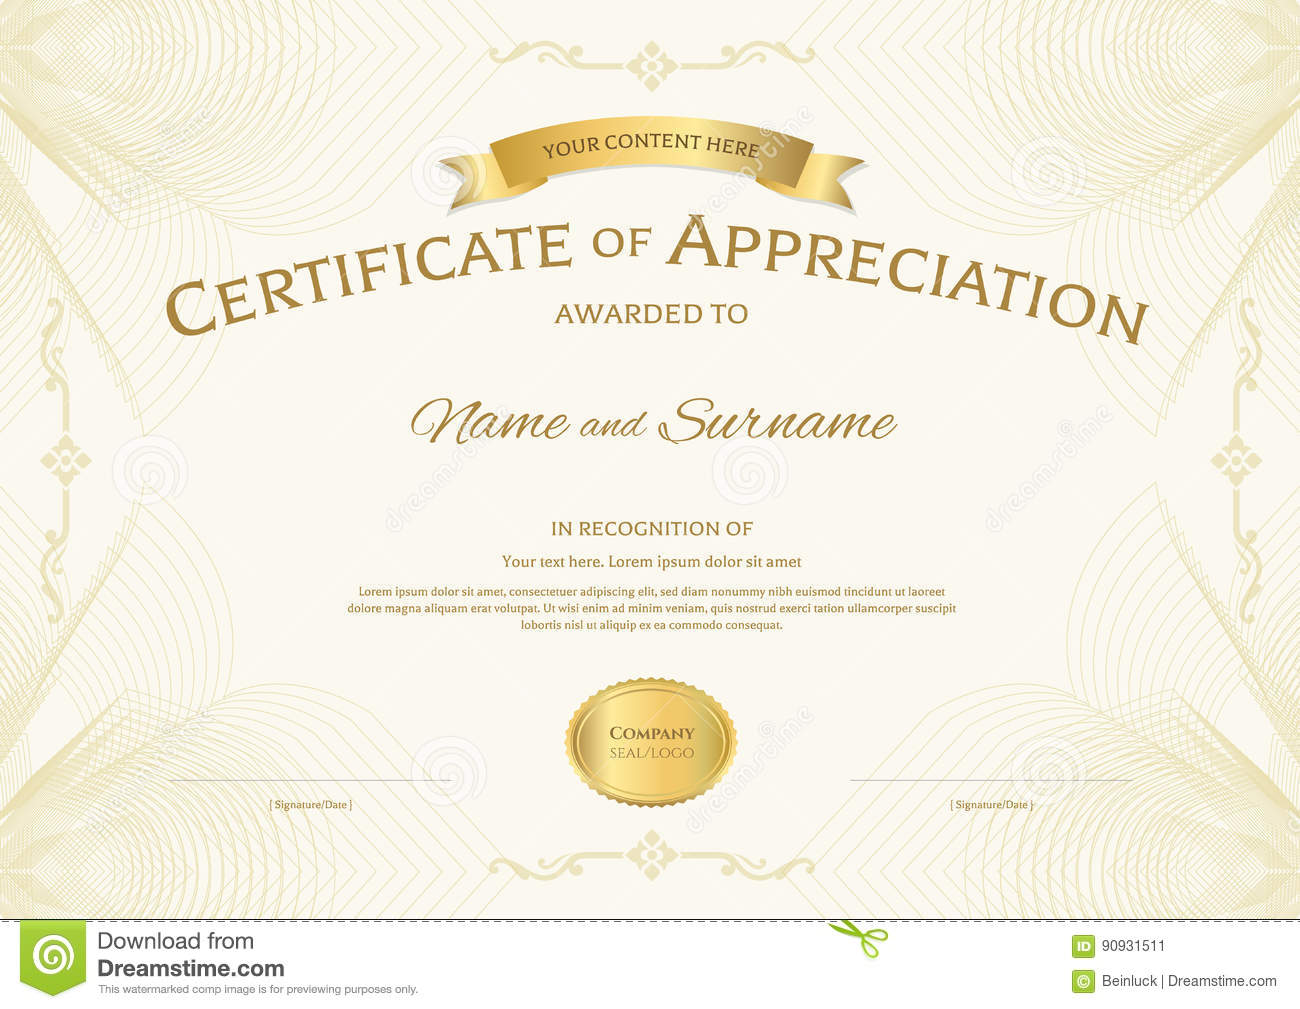 Certificate of appreciation template with award ribbon on abstra certificate of appreciation template with award ribbon on abstra yelopaper Images